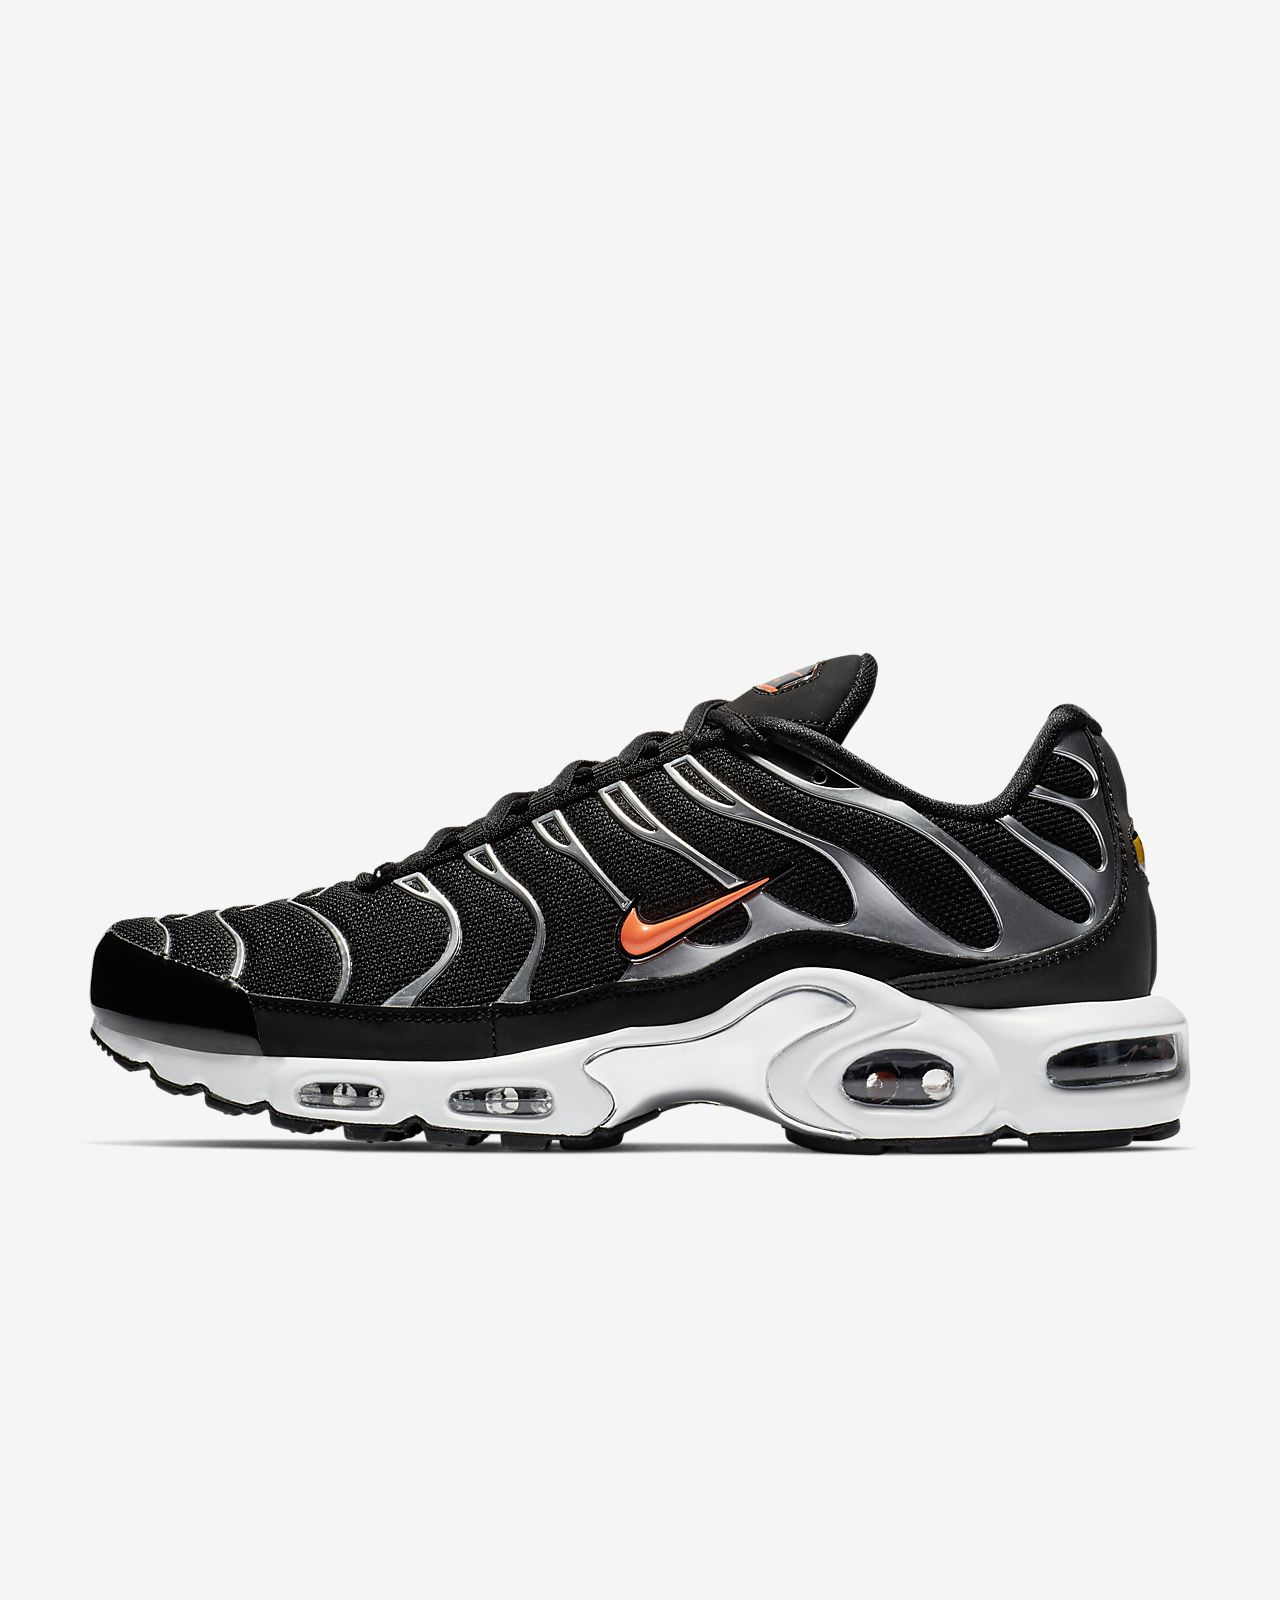 save off 70a2e 19891 ... Nike Air Max Plus TN SE Herrenschuh